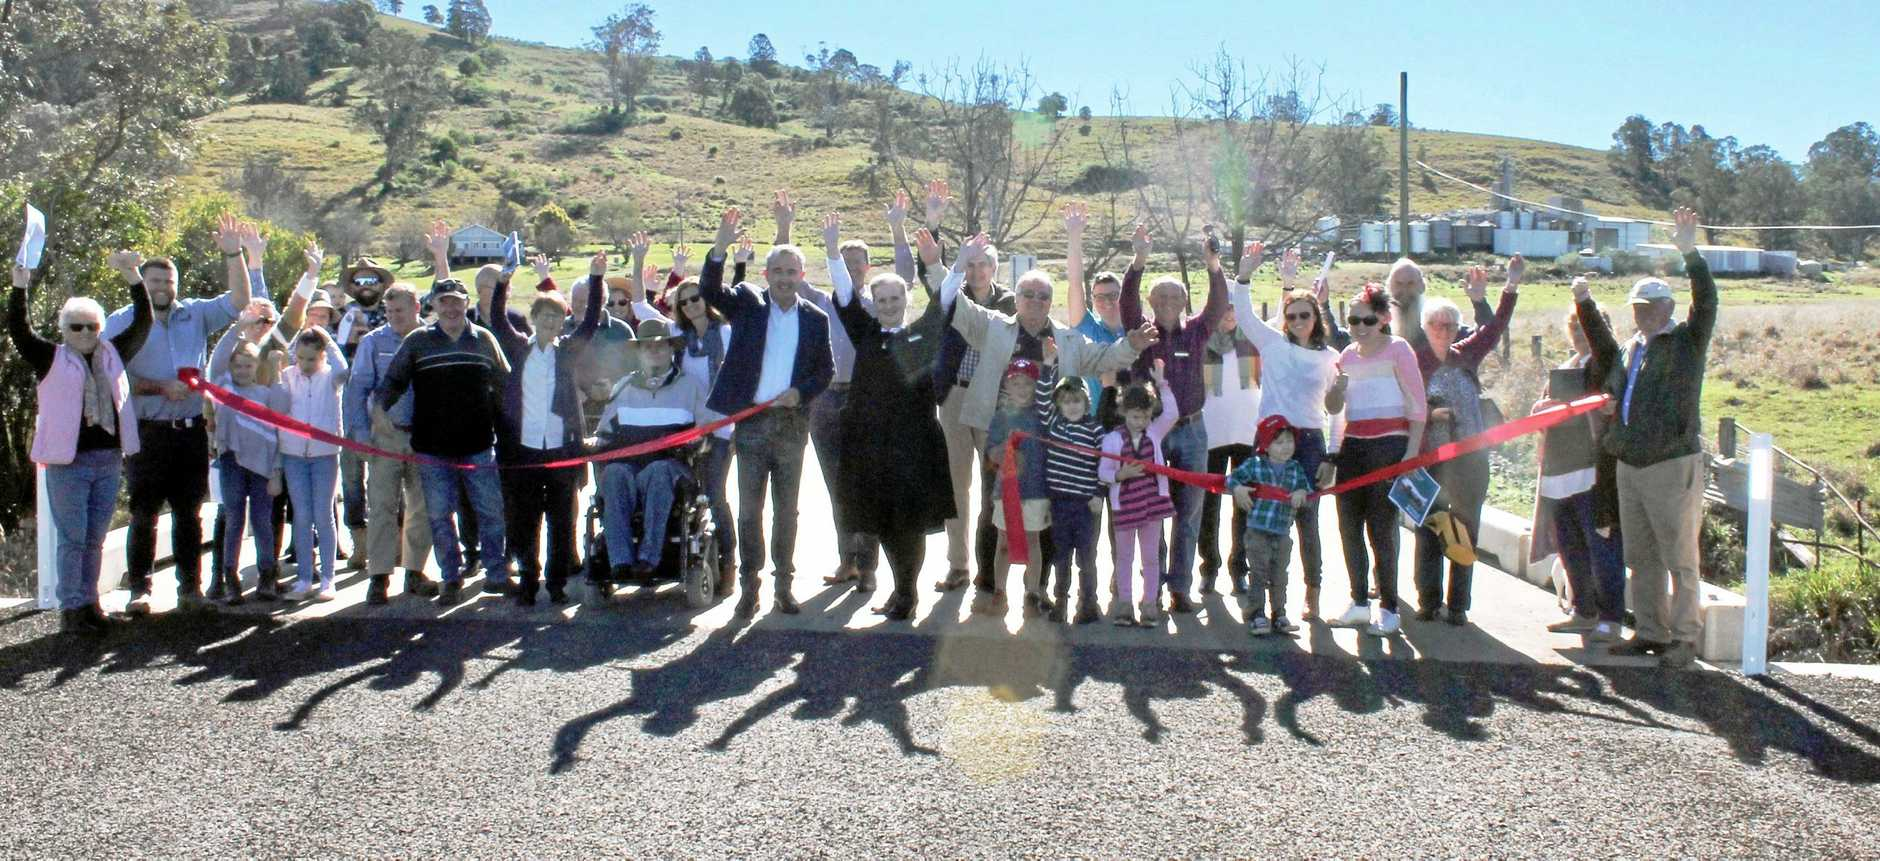 HOORAY, FINALLY: Standing in the centre, Kevin Hogan MP and Kyogle mayor Danielle Mulholland celebrate the opening of Culmaran Creek Rd with residents and business owners.